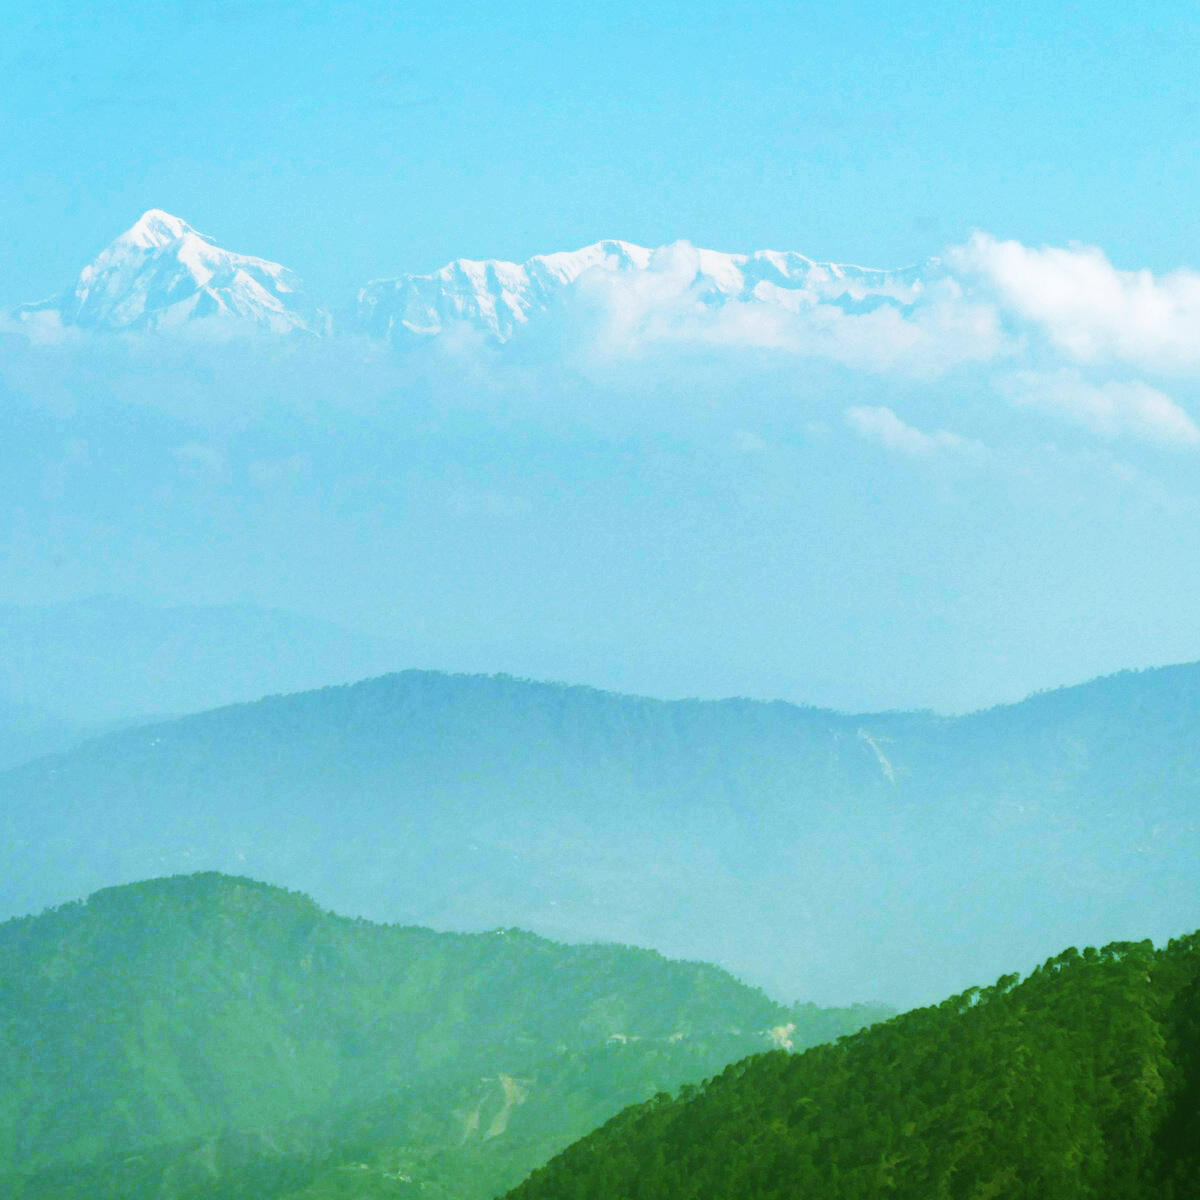 Summits of Himalayan peaks are visible in the distance: The mountain on the left is Trishul, at 23,496 feet. Noah Strycker